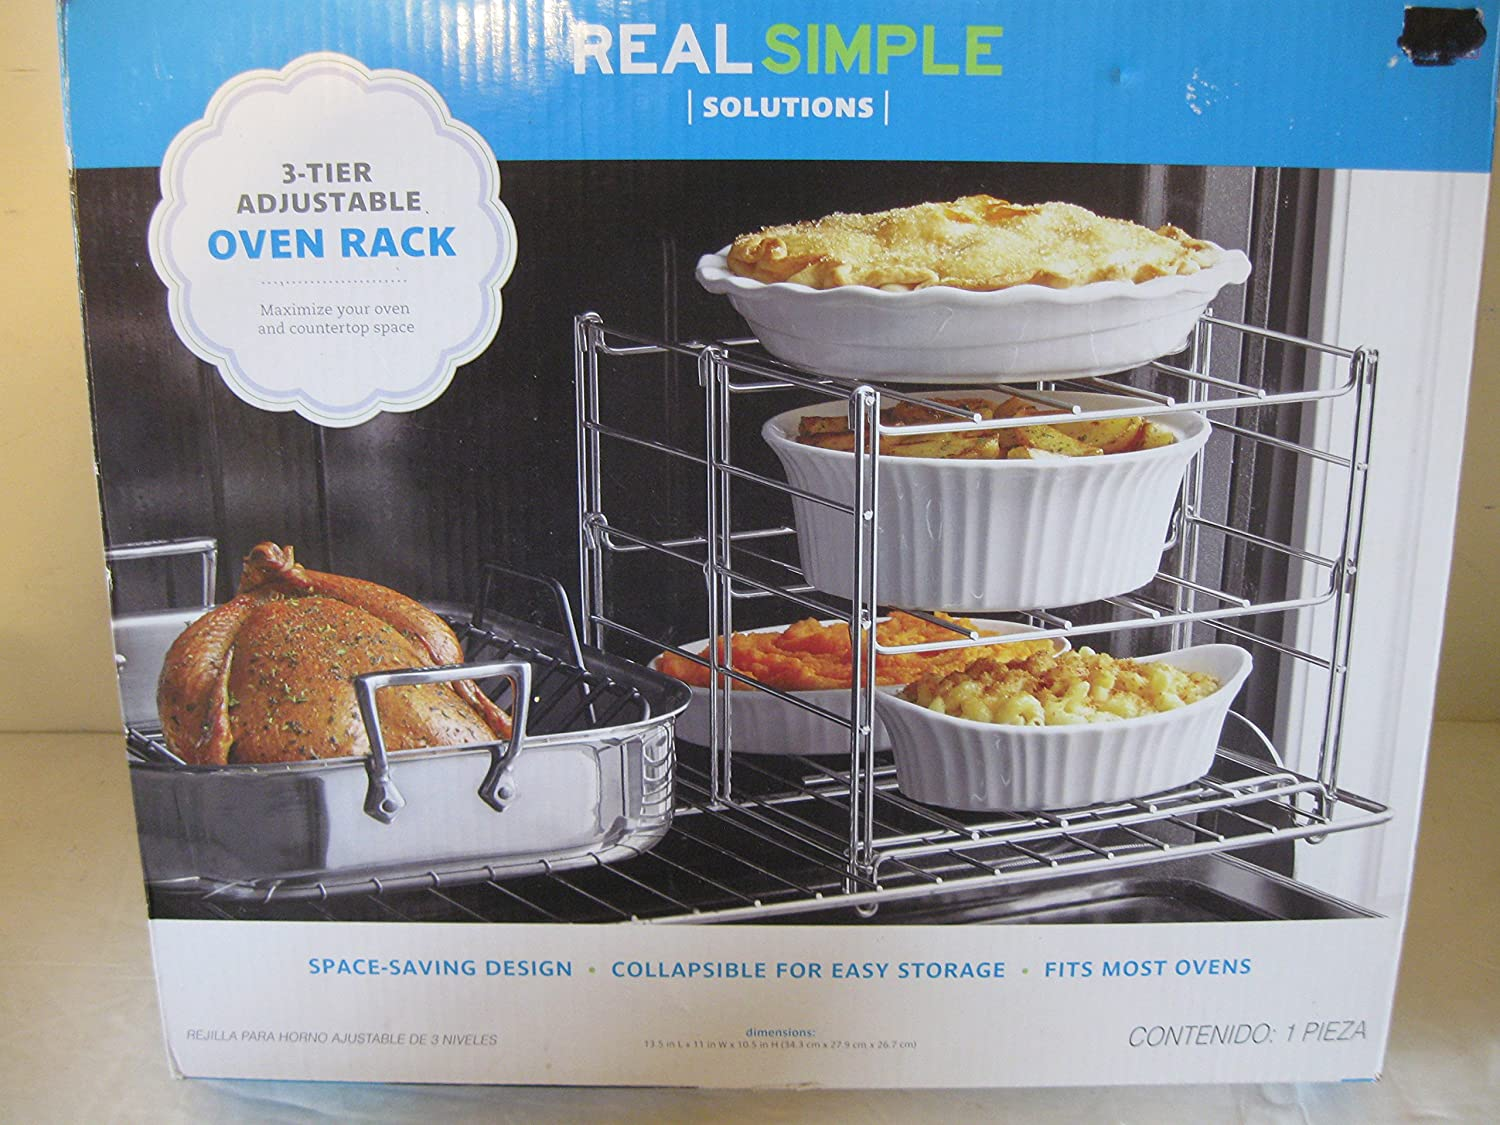 Oven Racks, Adjustable, Real Simple Solutions 3 - Tier Adjustable Oven Racks, Space Saving Design, fits Most Ovens